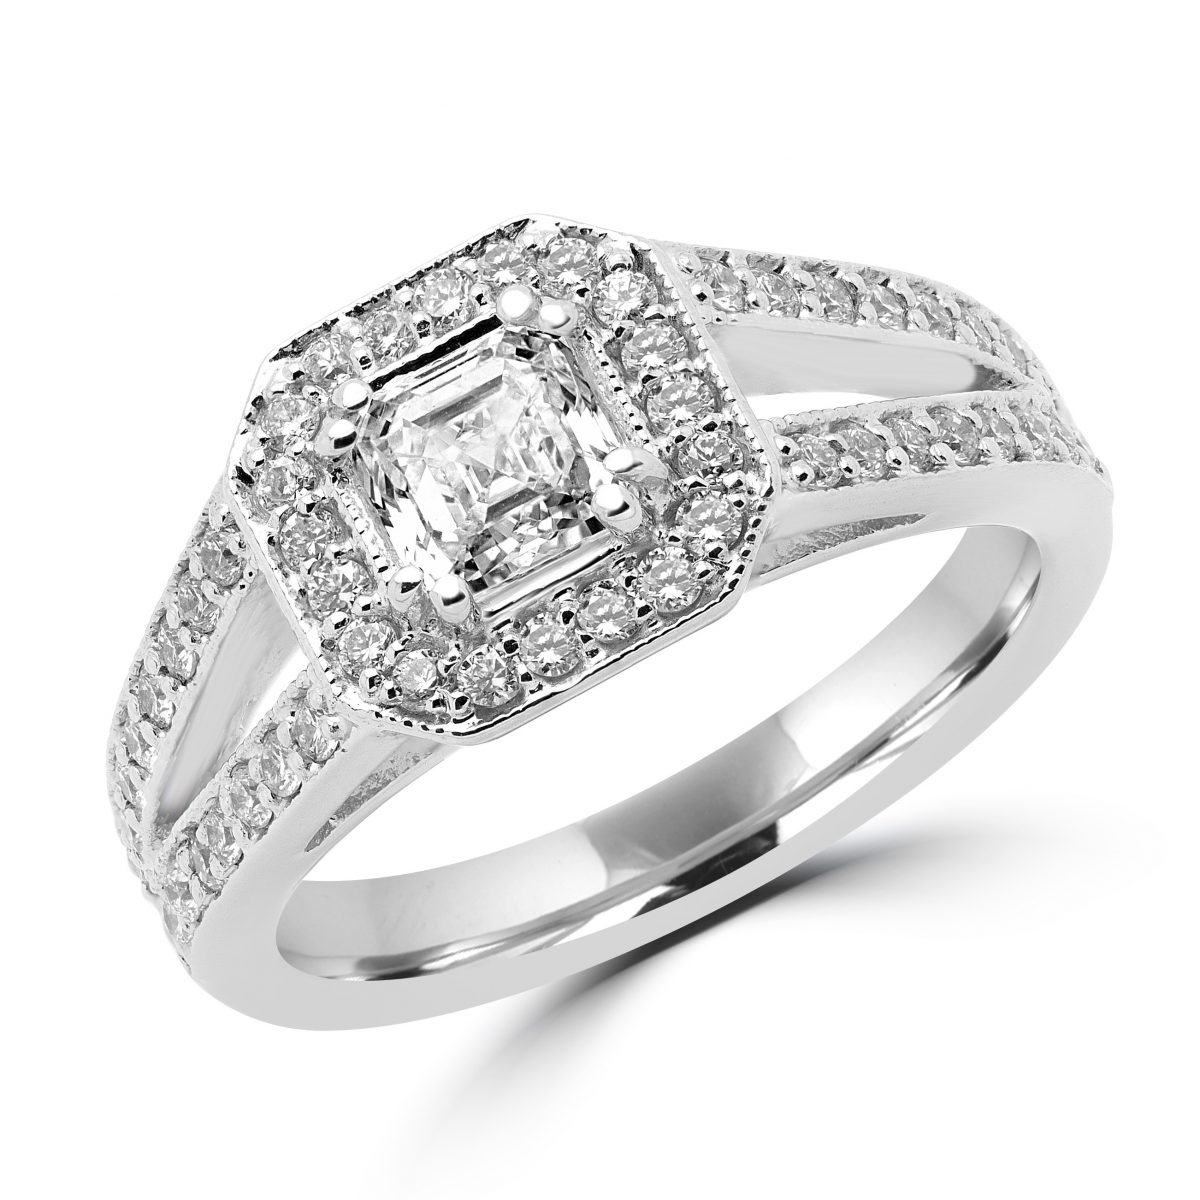 shop collections uk engagement diamond online rings greek diamonds